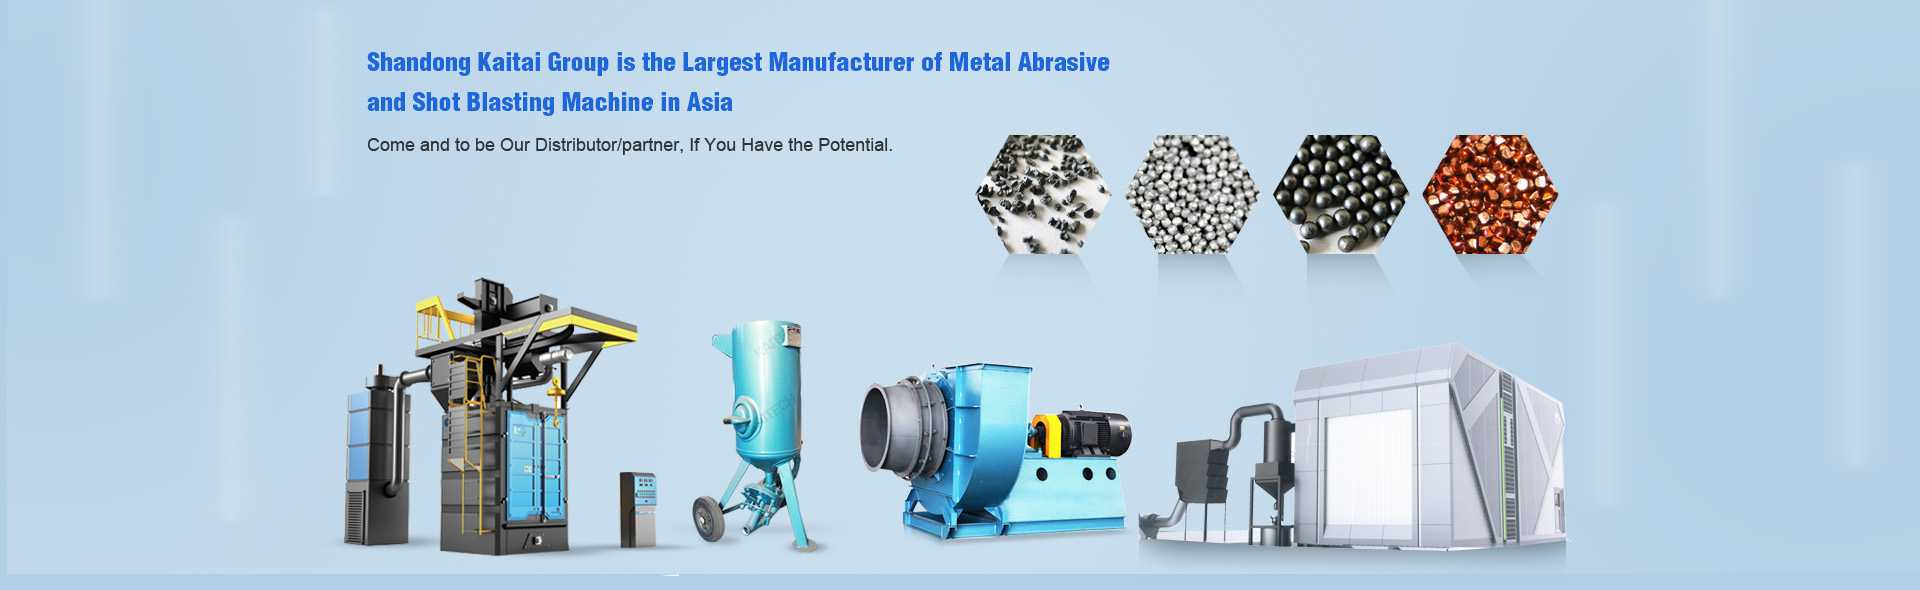 Shandong Kaitai Group Co., Ltd. is the largest manufacturer of metal abrasive in Asia